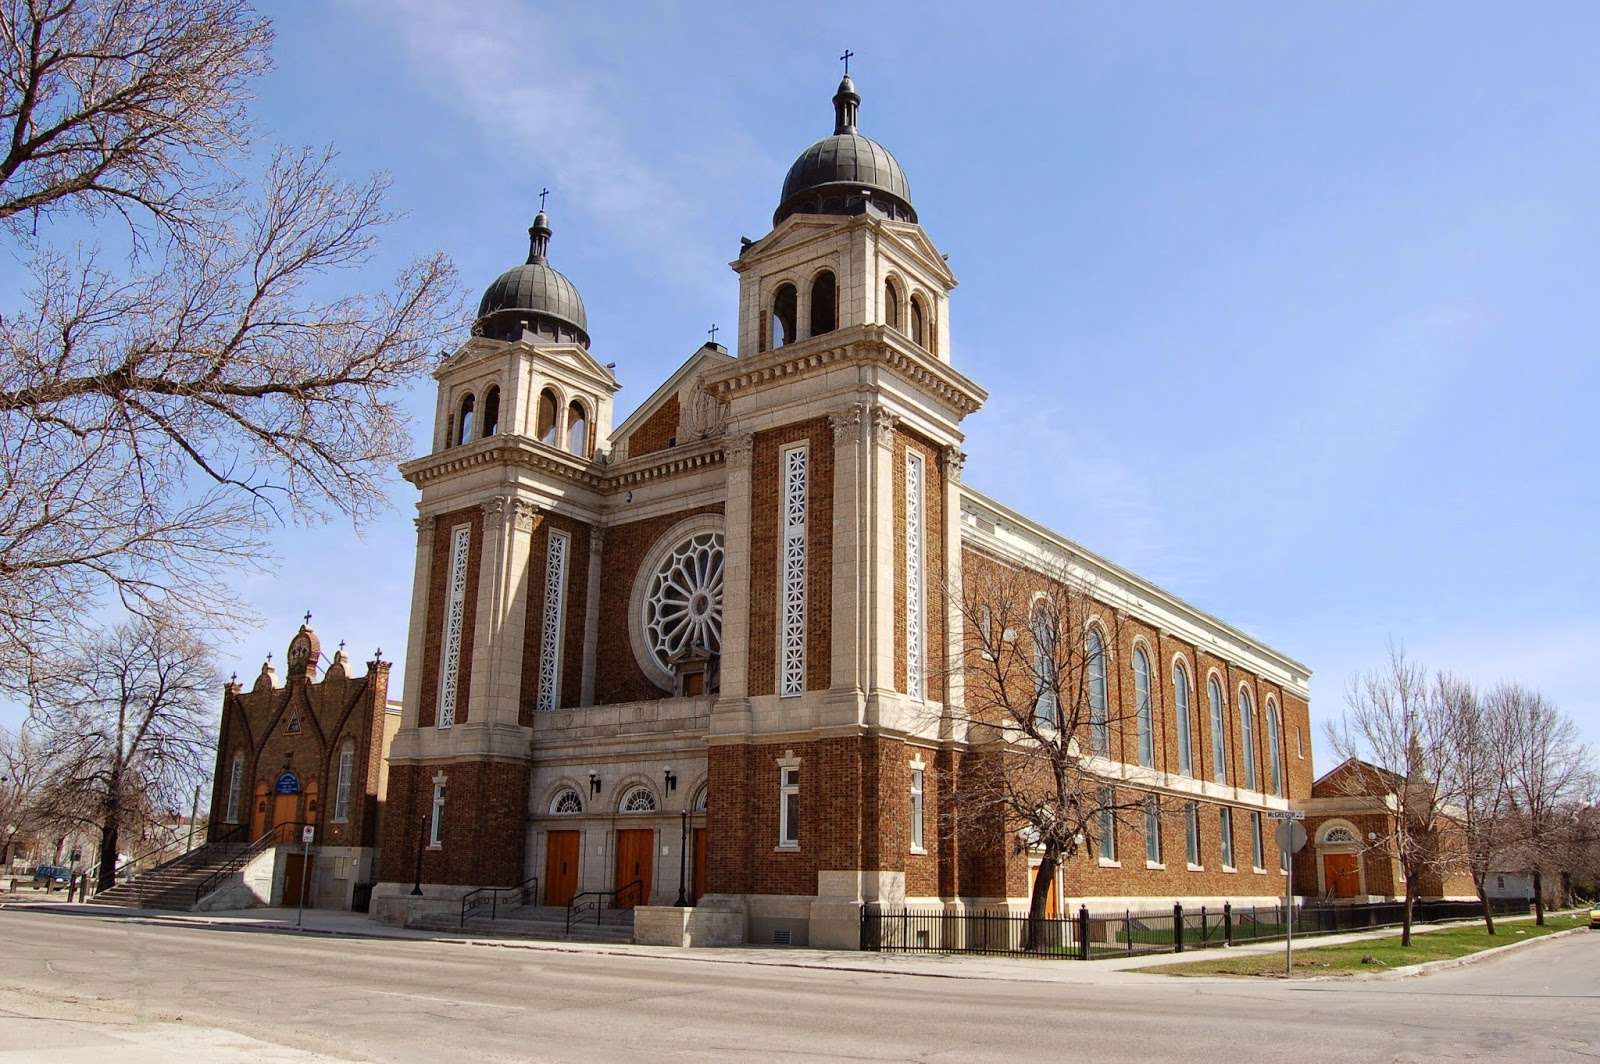 The Ukrainian Catholic Metropolitan Cathedral of Sts, Vladimir and Olga - 115 MacGregor Street